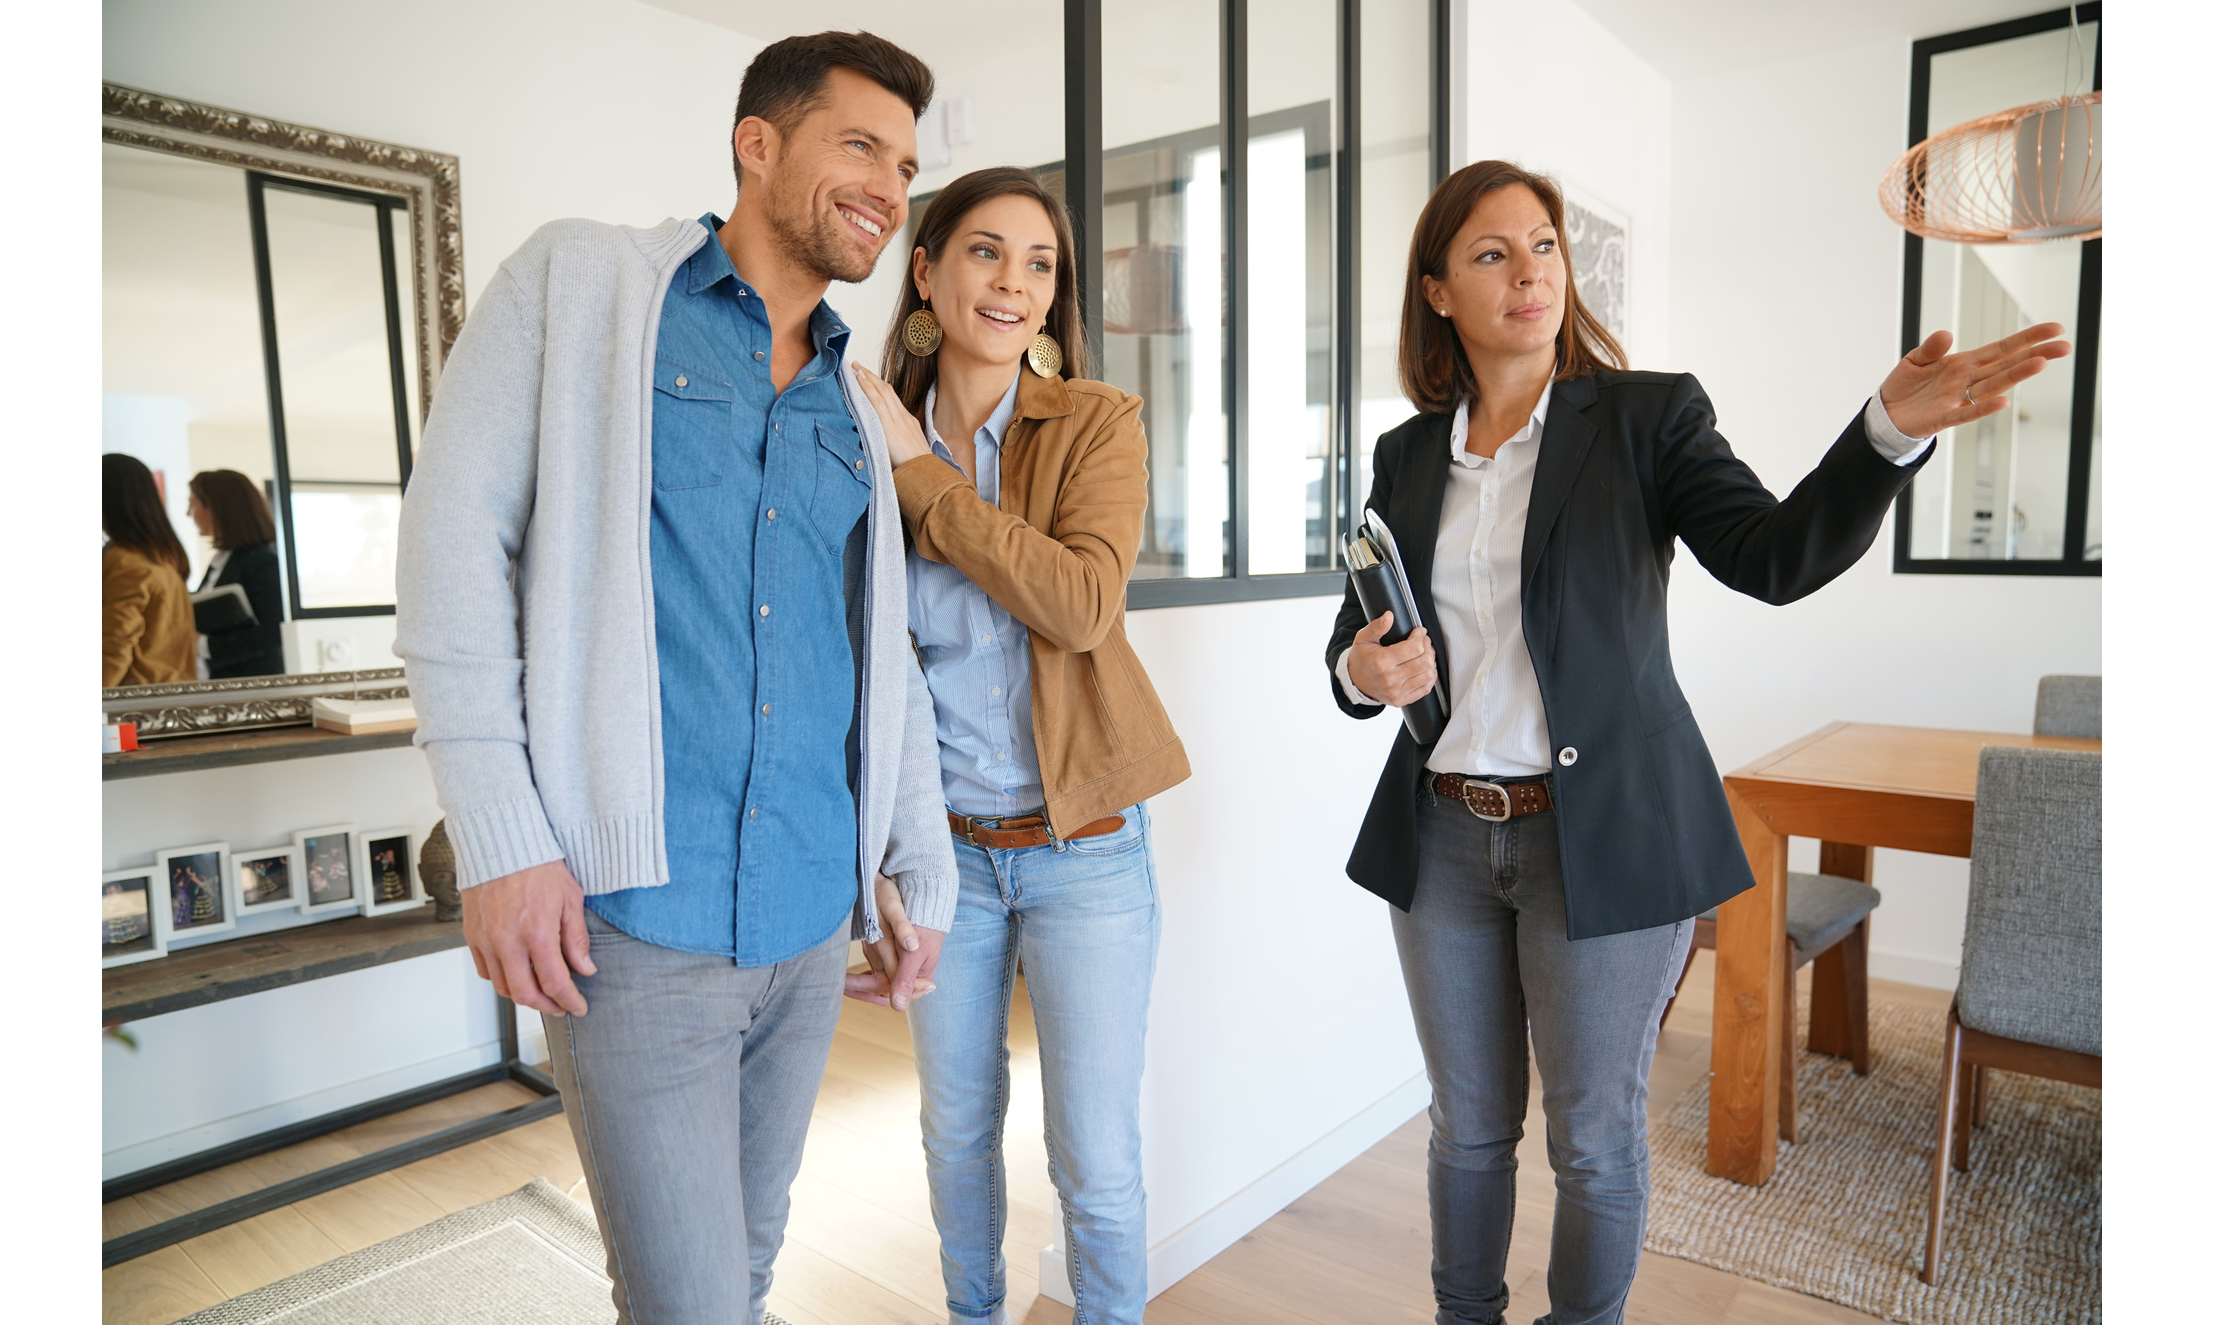 12 Real Estate Tips For Making Every Buyer A Happy Customer